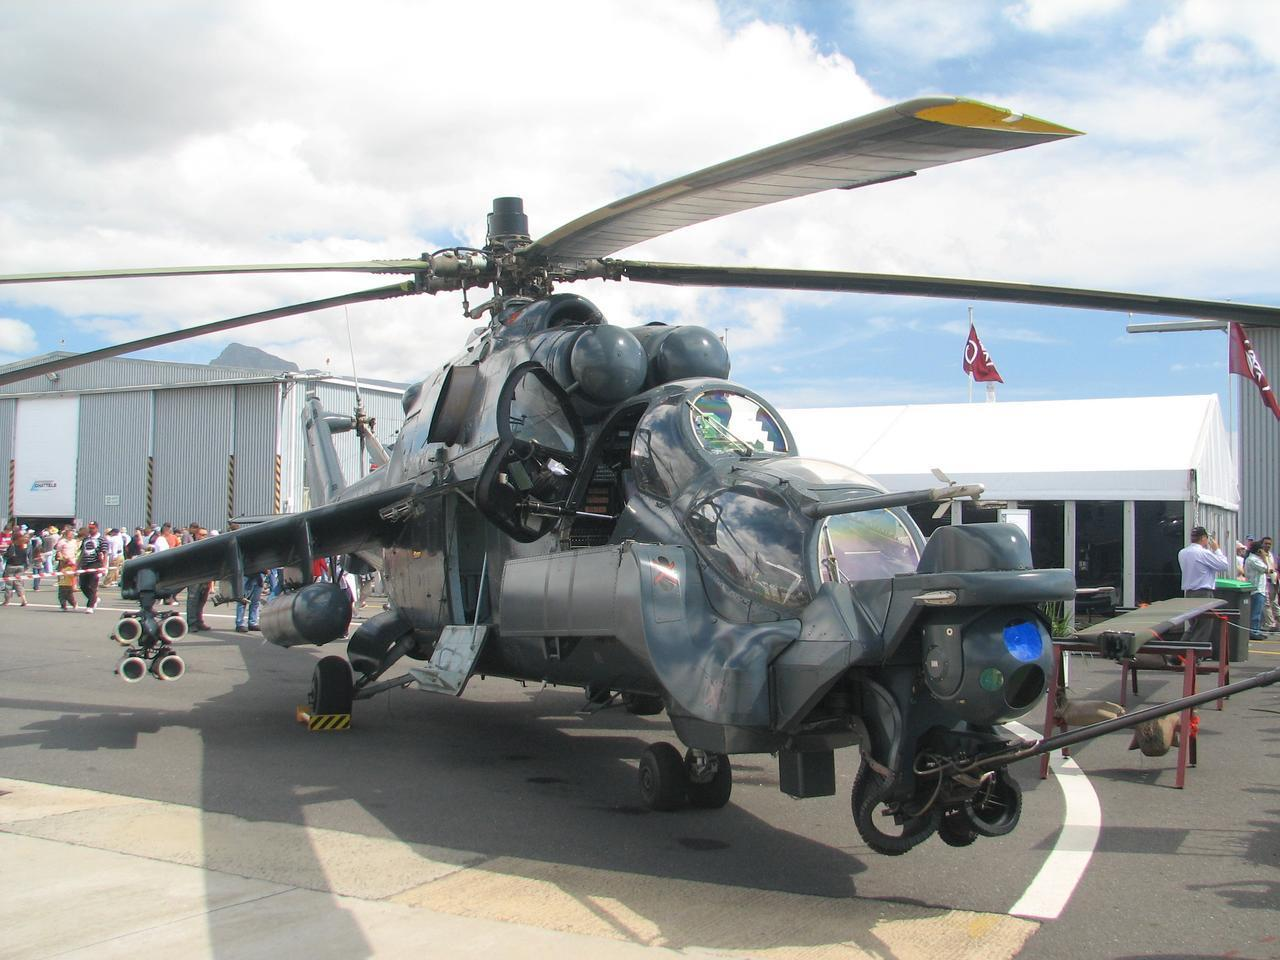 Aircraft military Helicopters hind